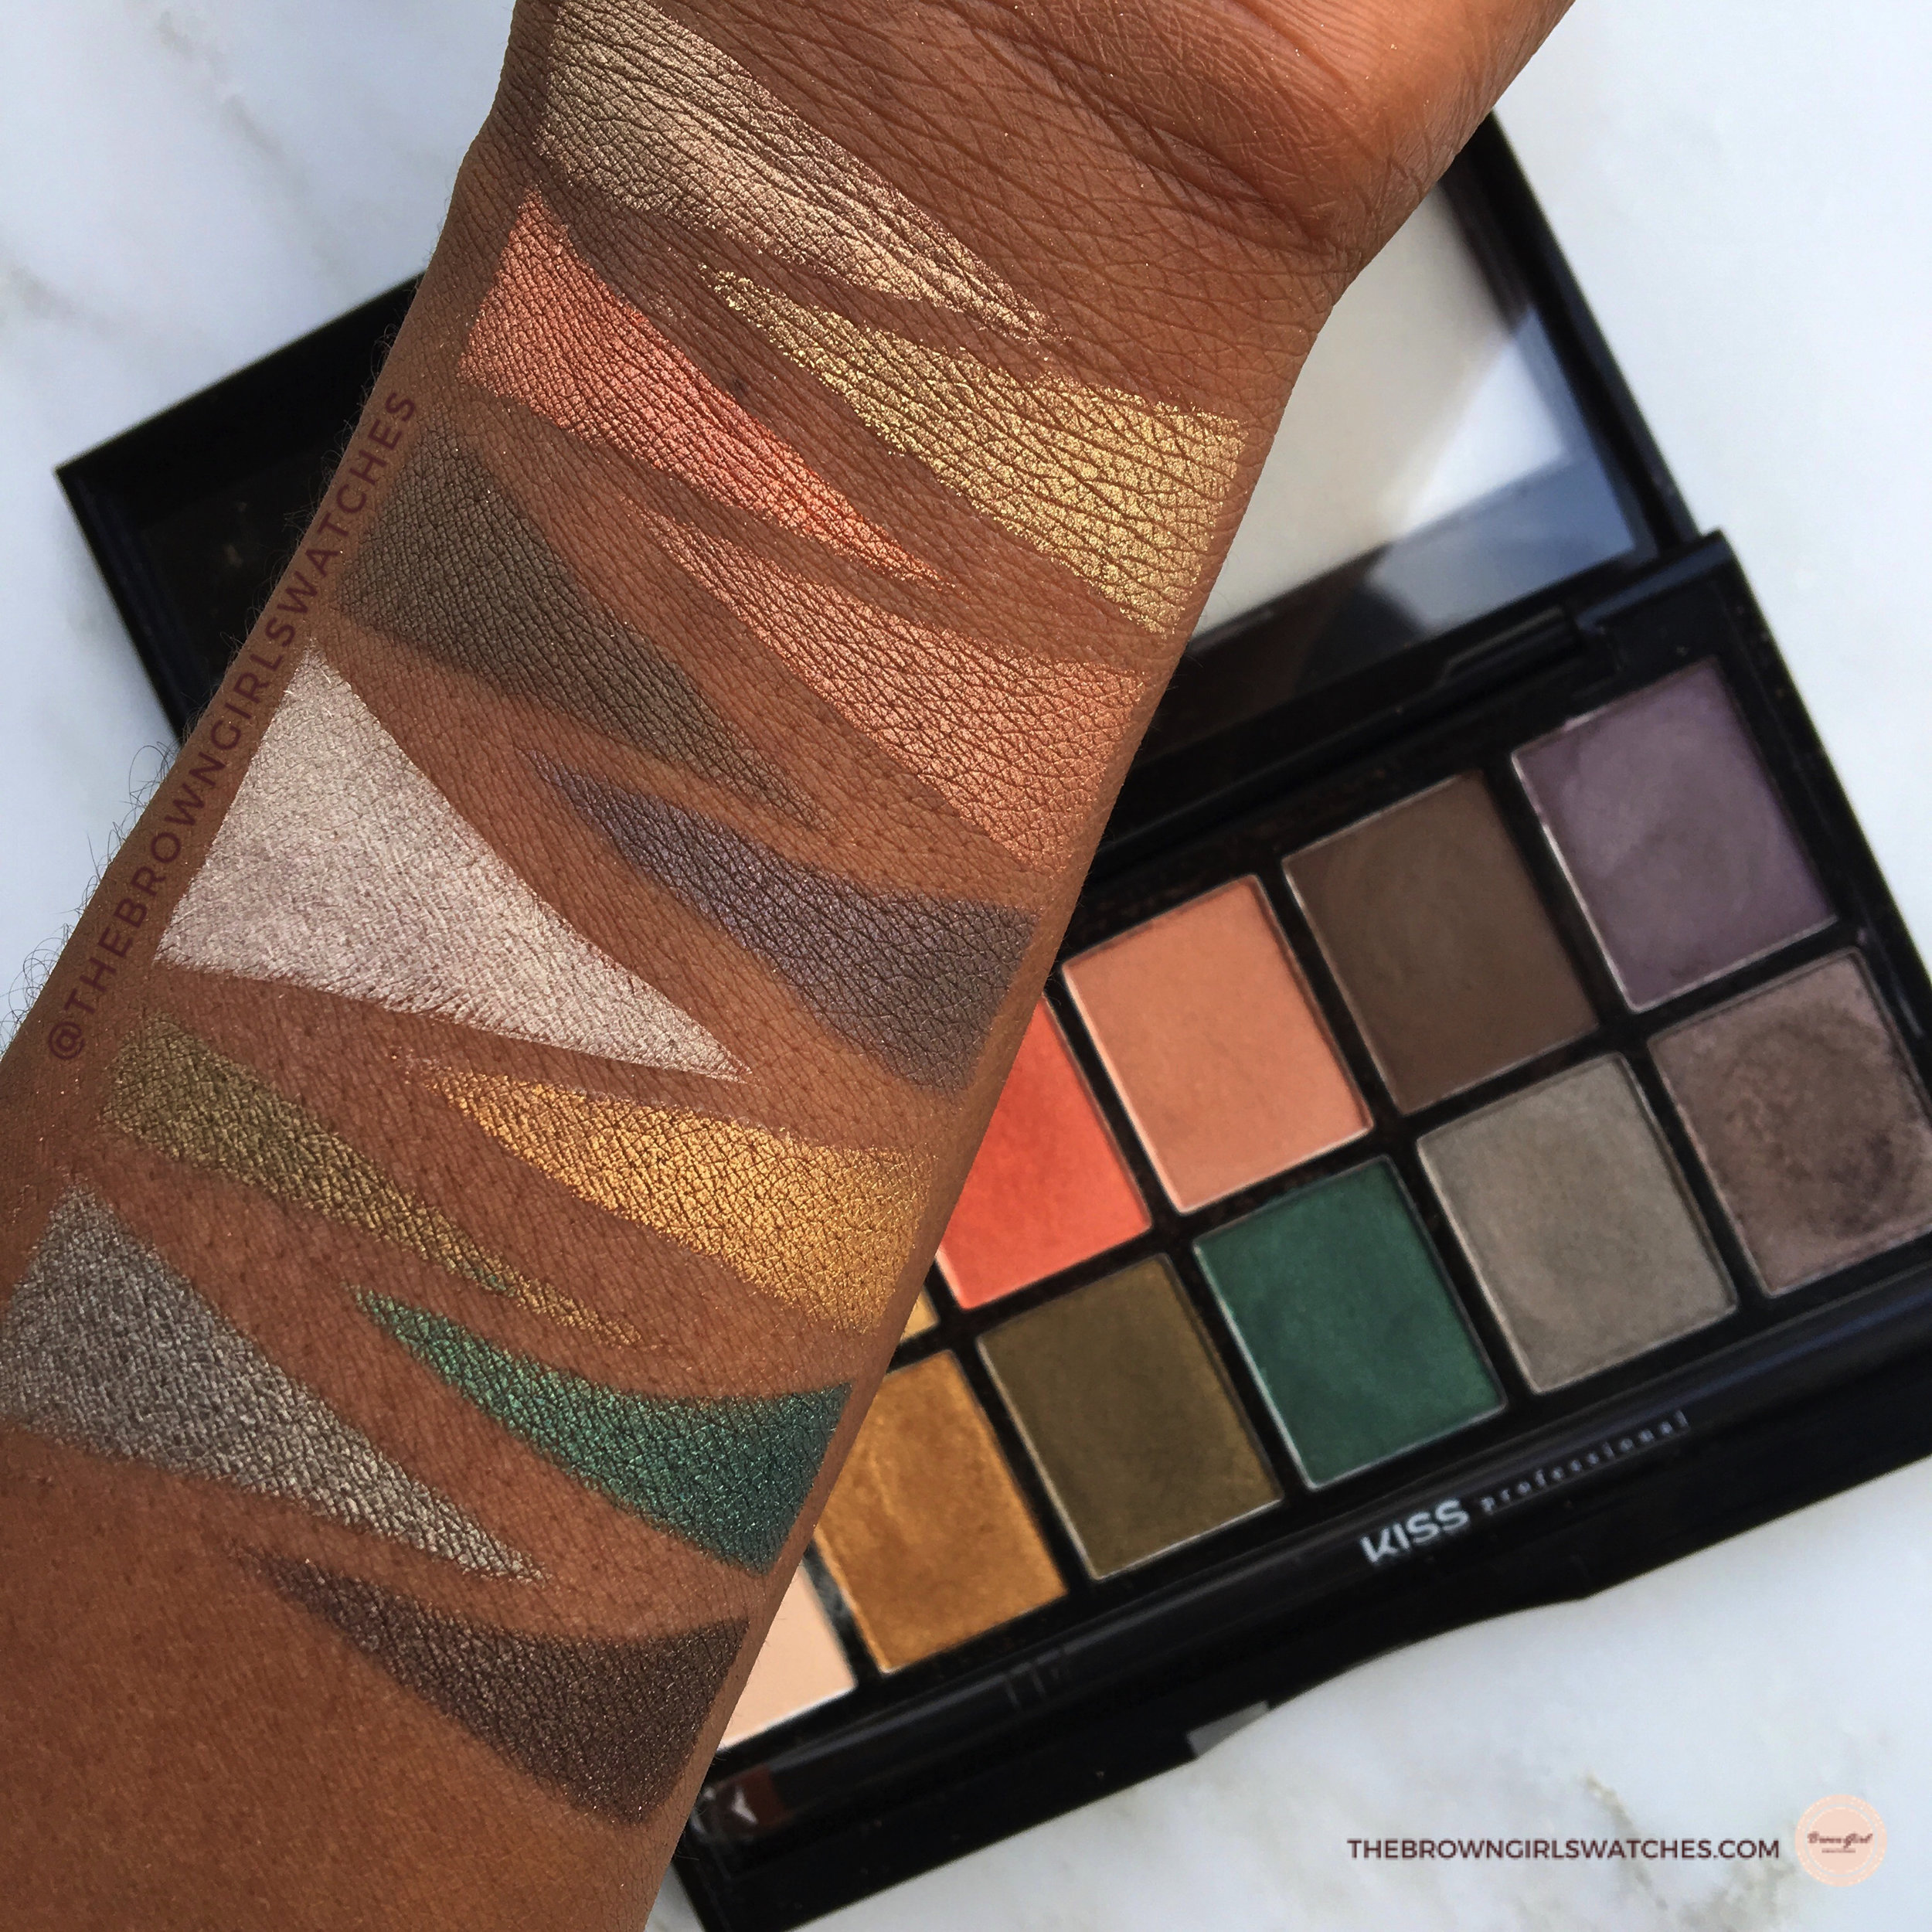 Swatches on Brown Skin